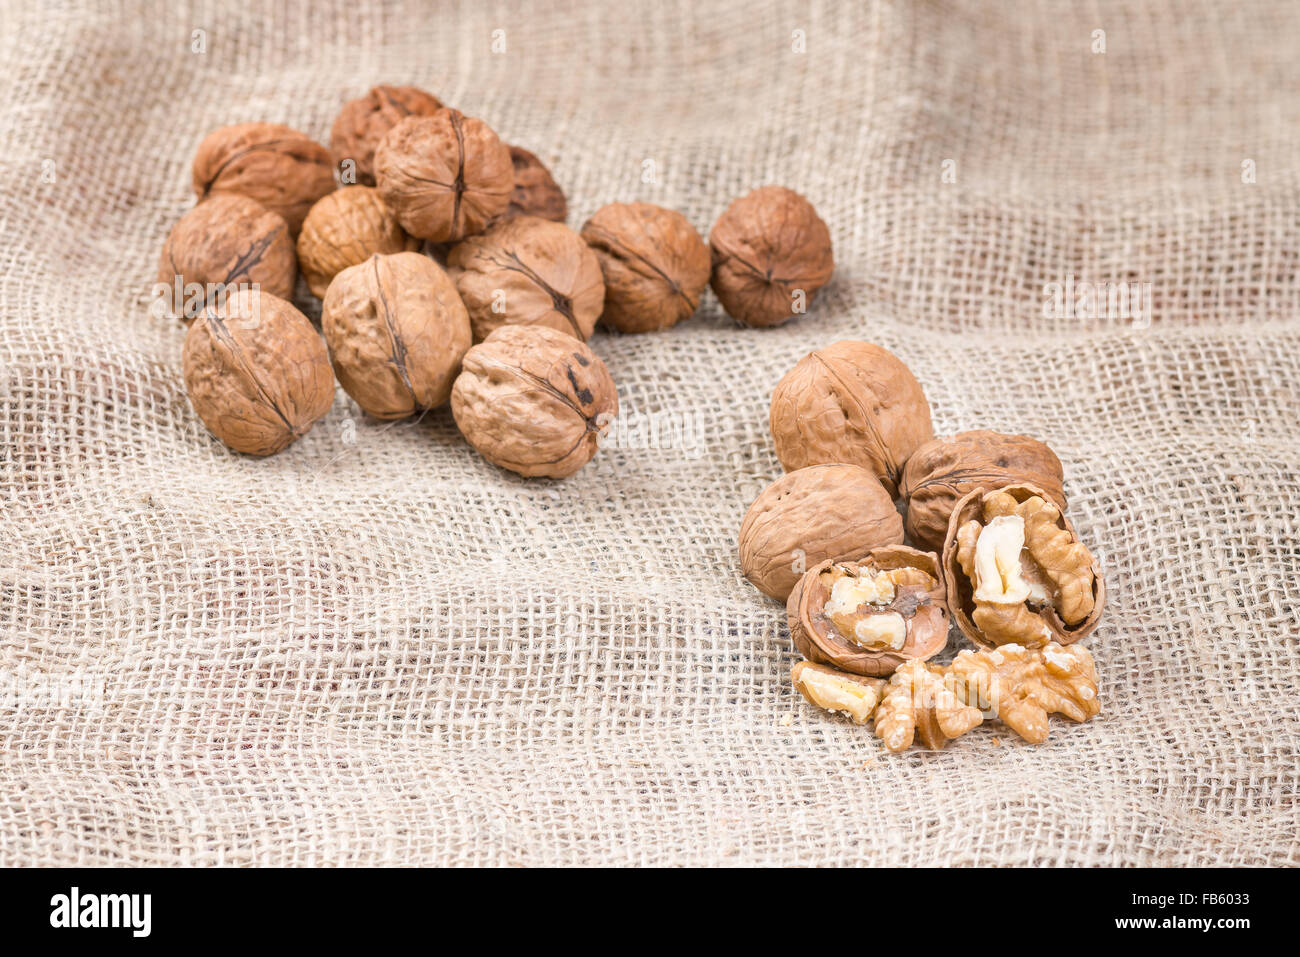 Walnut kernels and whole walnuts on rustic sack. - Stock Image